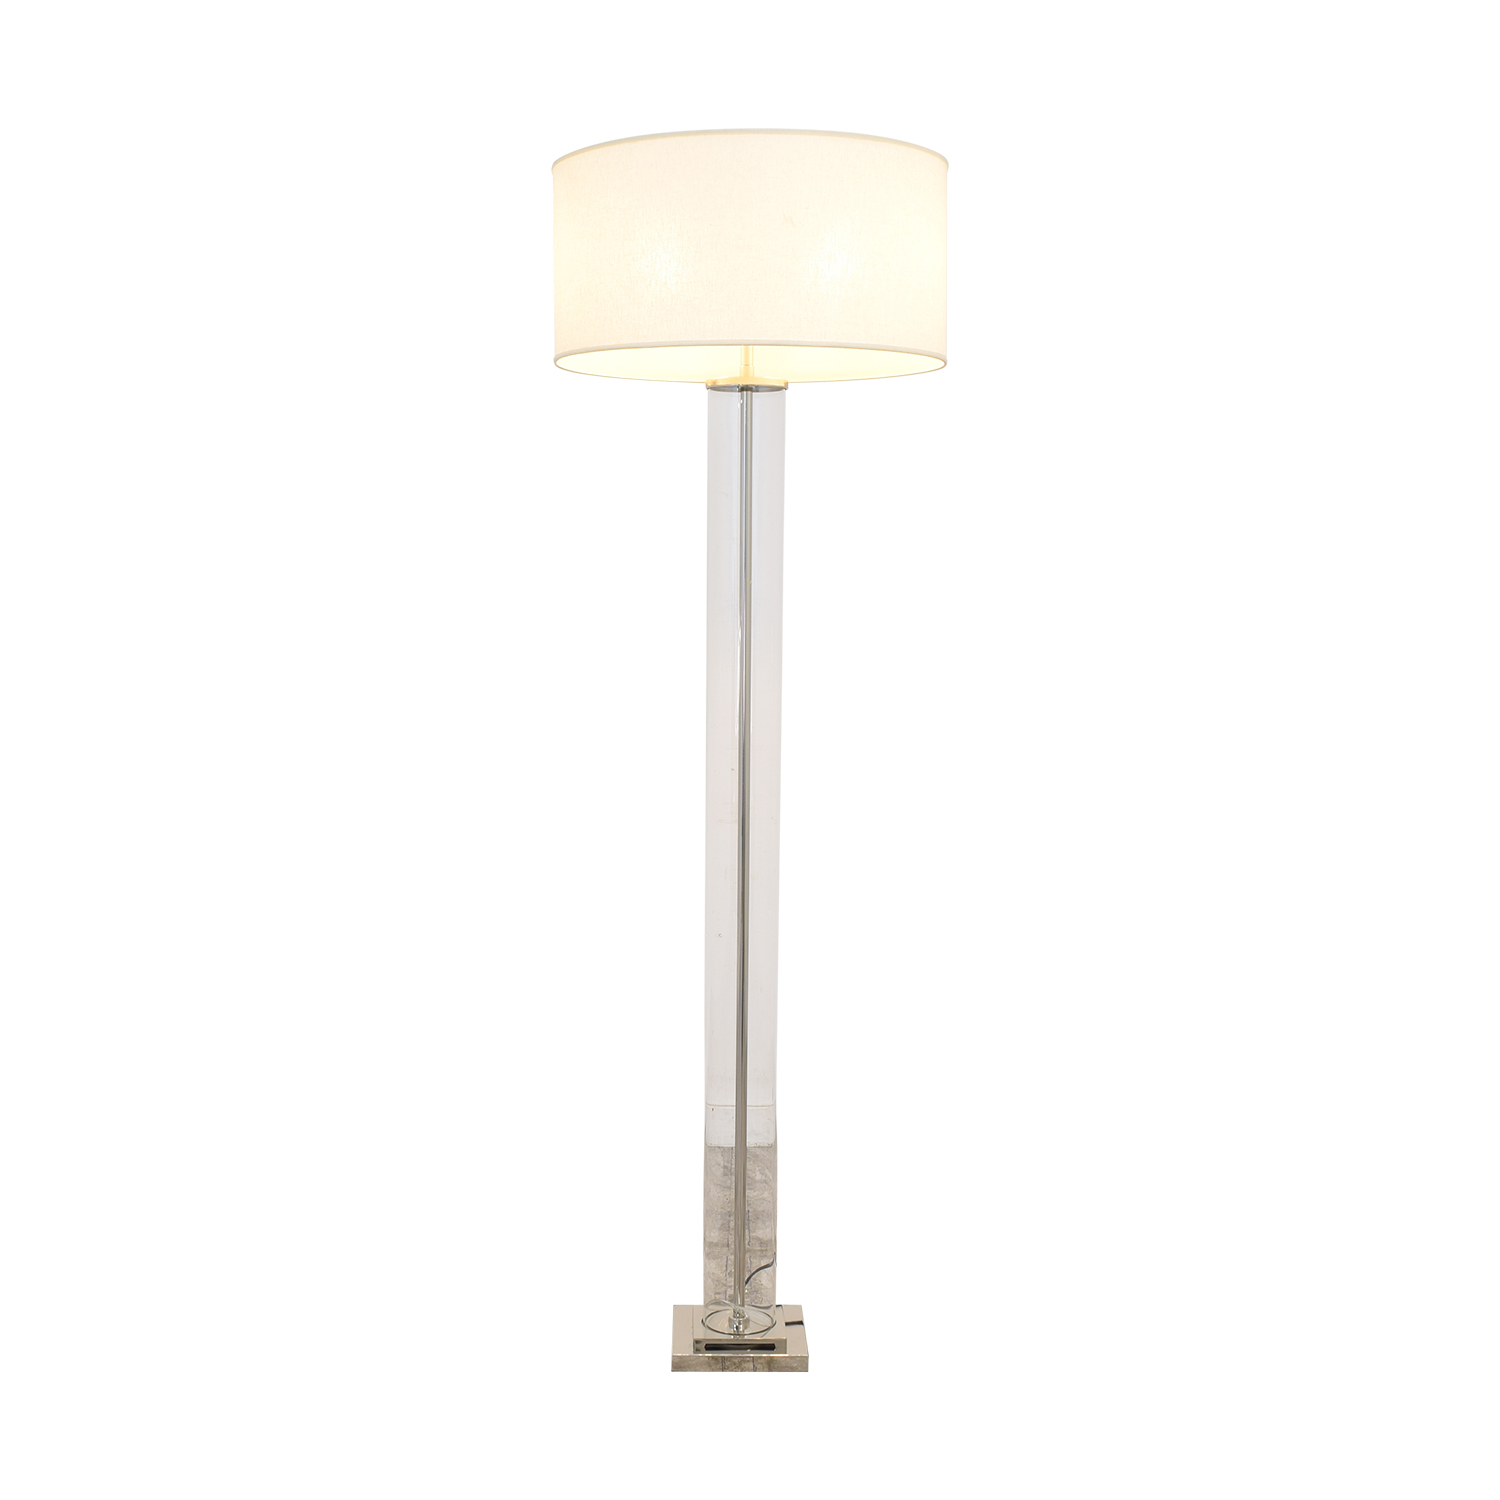 Restoration Hardware Restoration Hardware French Column Glass Floor Lamp with Shade pa